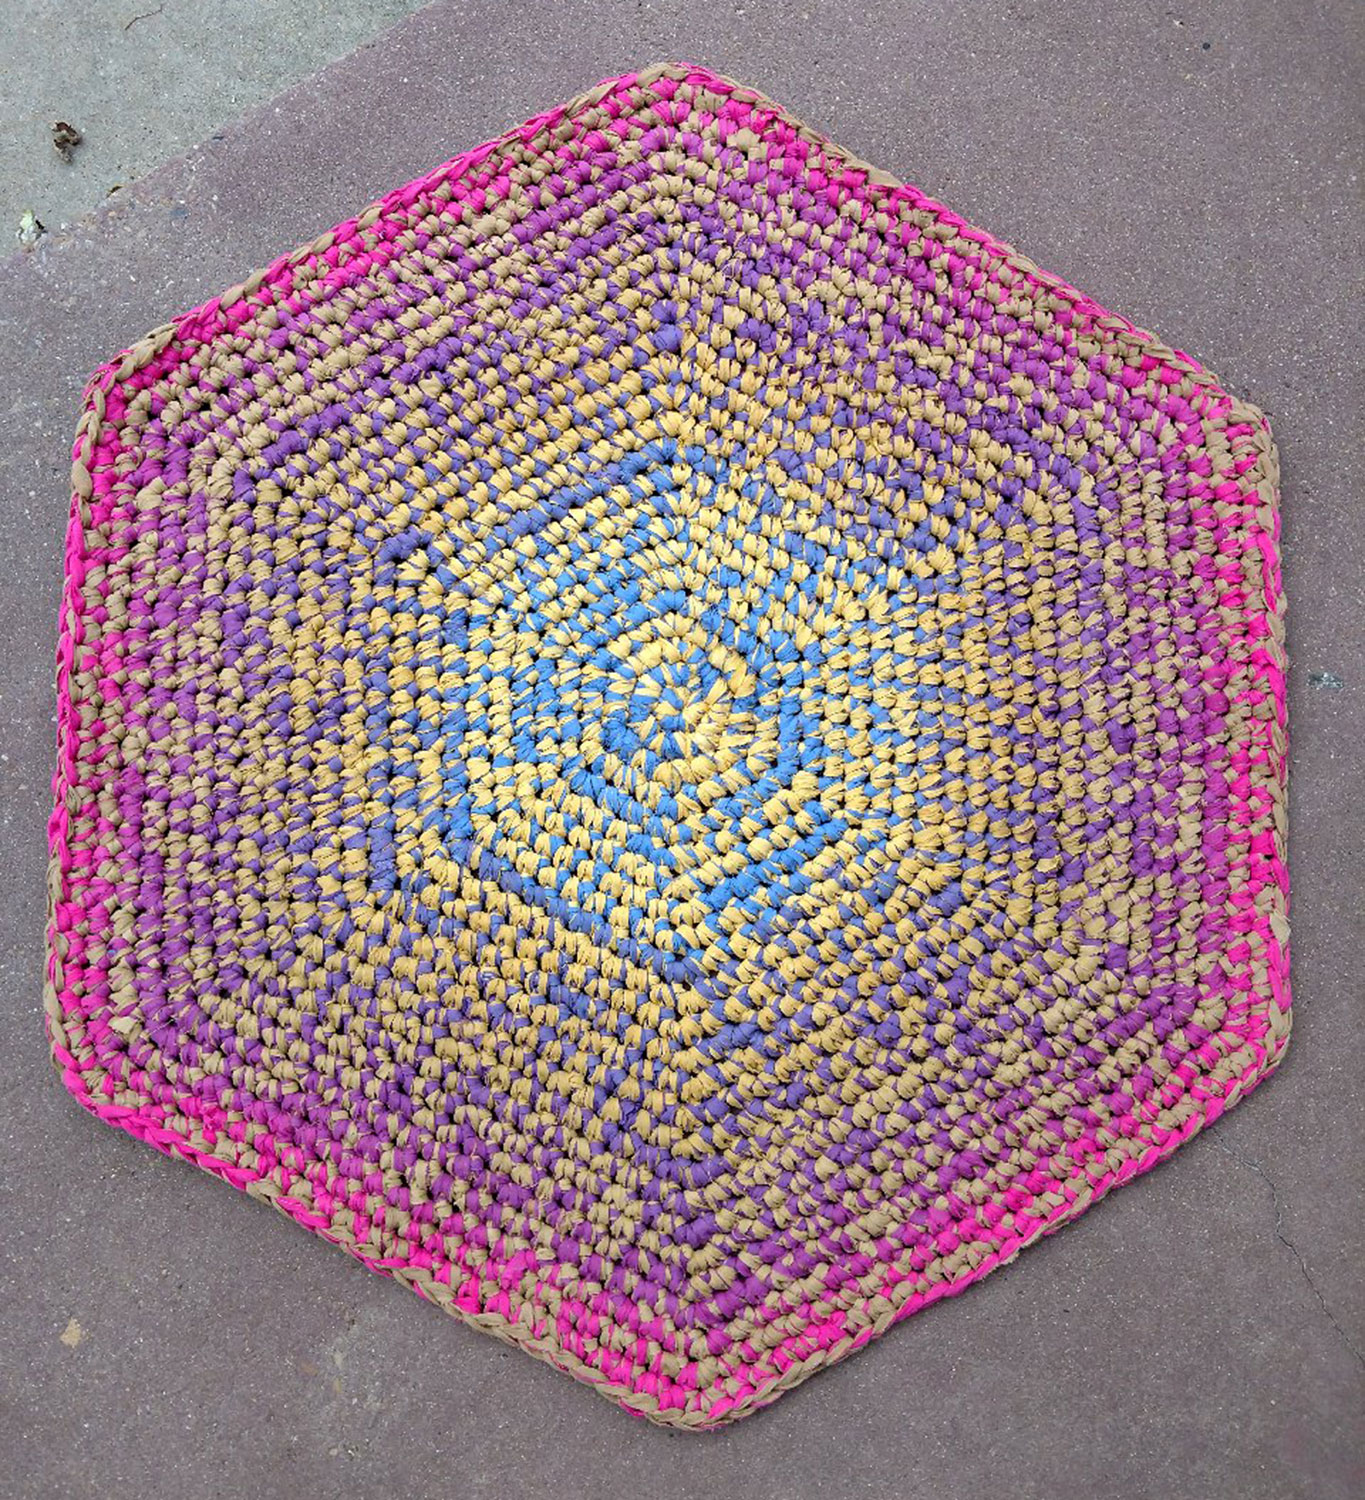 Dyed woven textile rug by Chuck